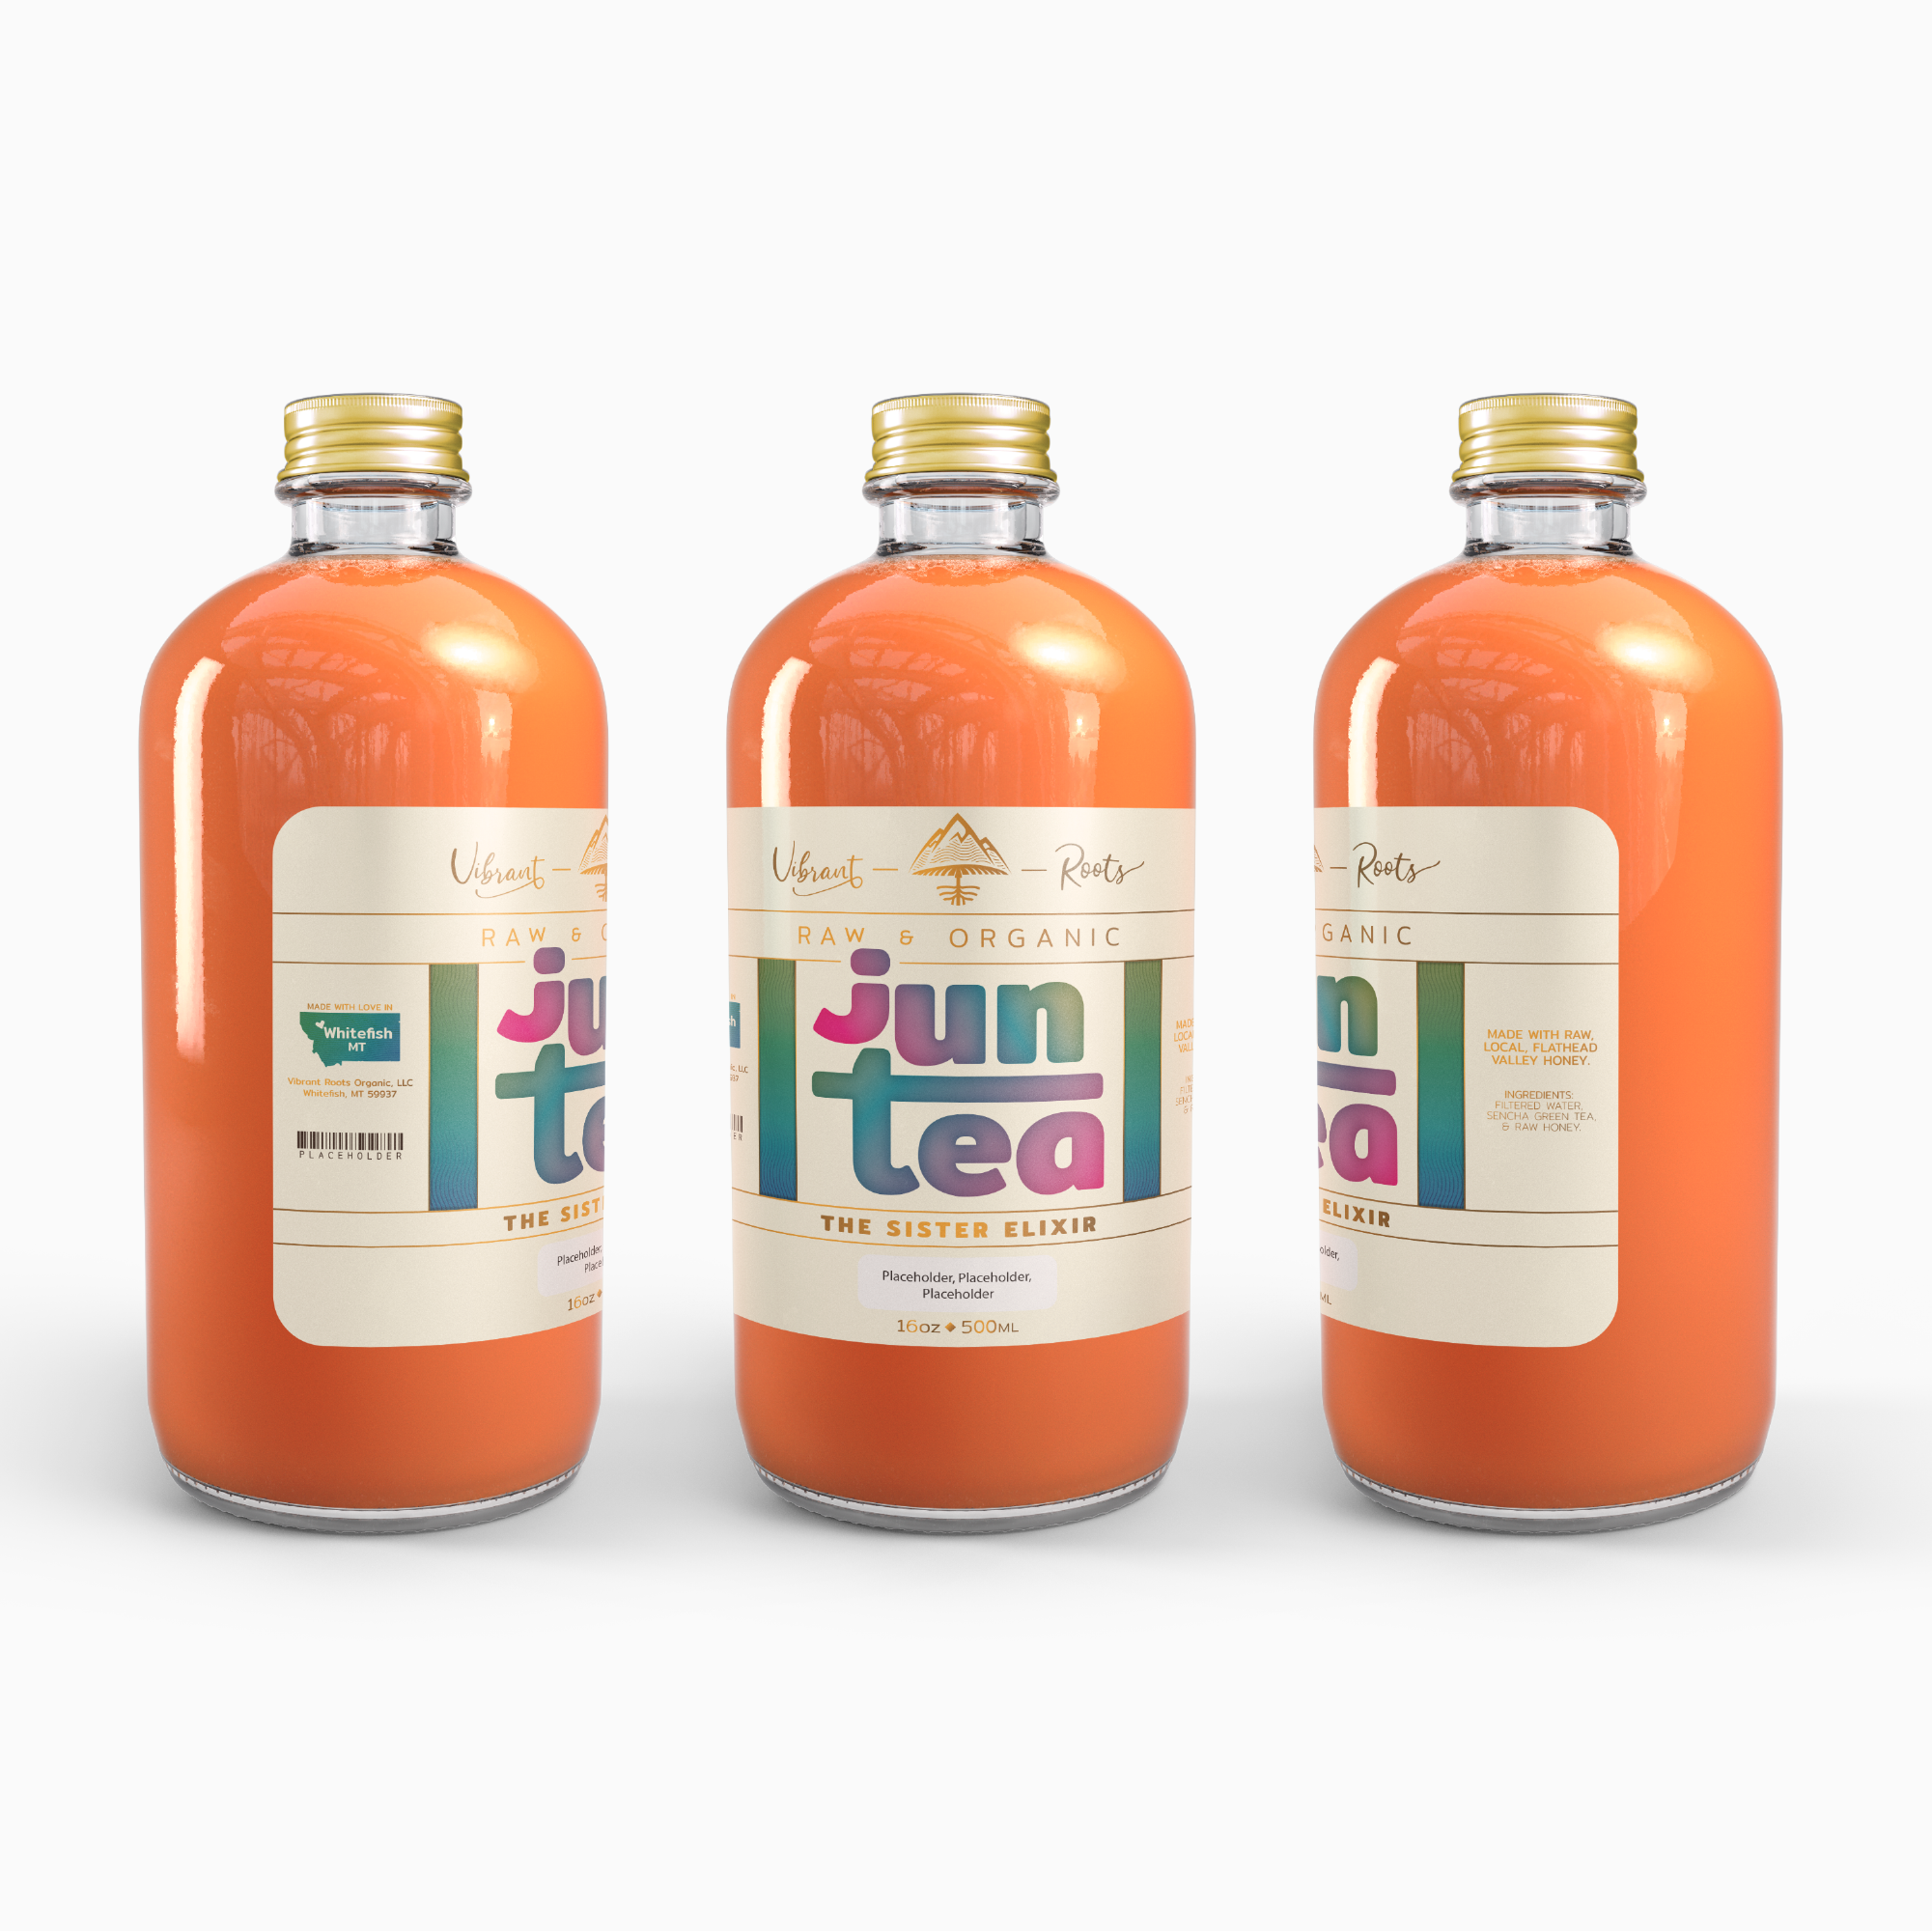 Vibrant Roots Jun Label Design